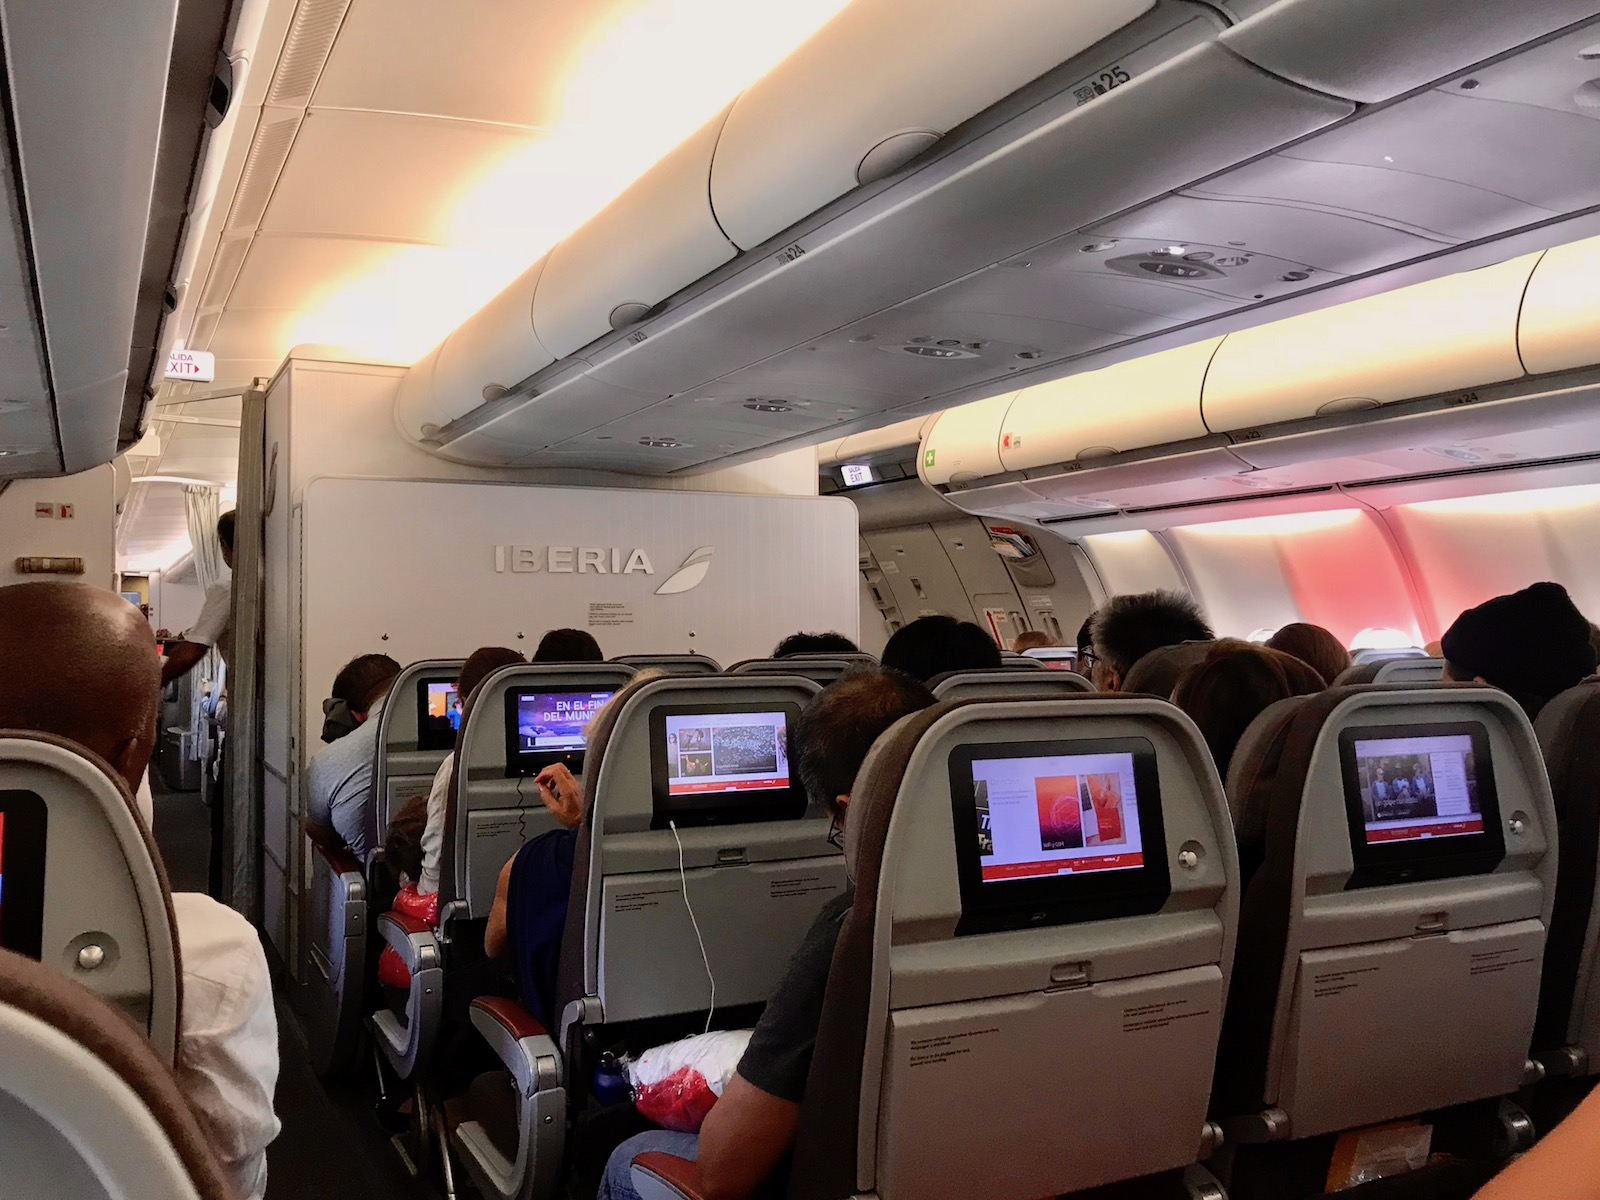 In-flight Entertainment (IFE) screens in each seatback. Note the USB cord plugged into the jack just below the screen,